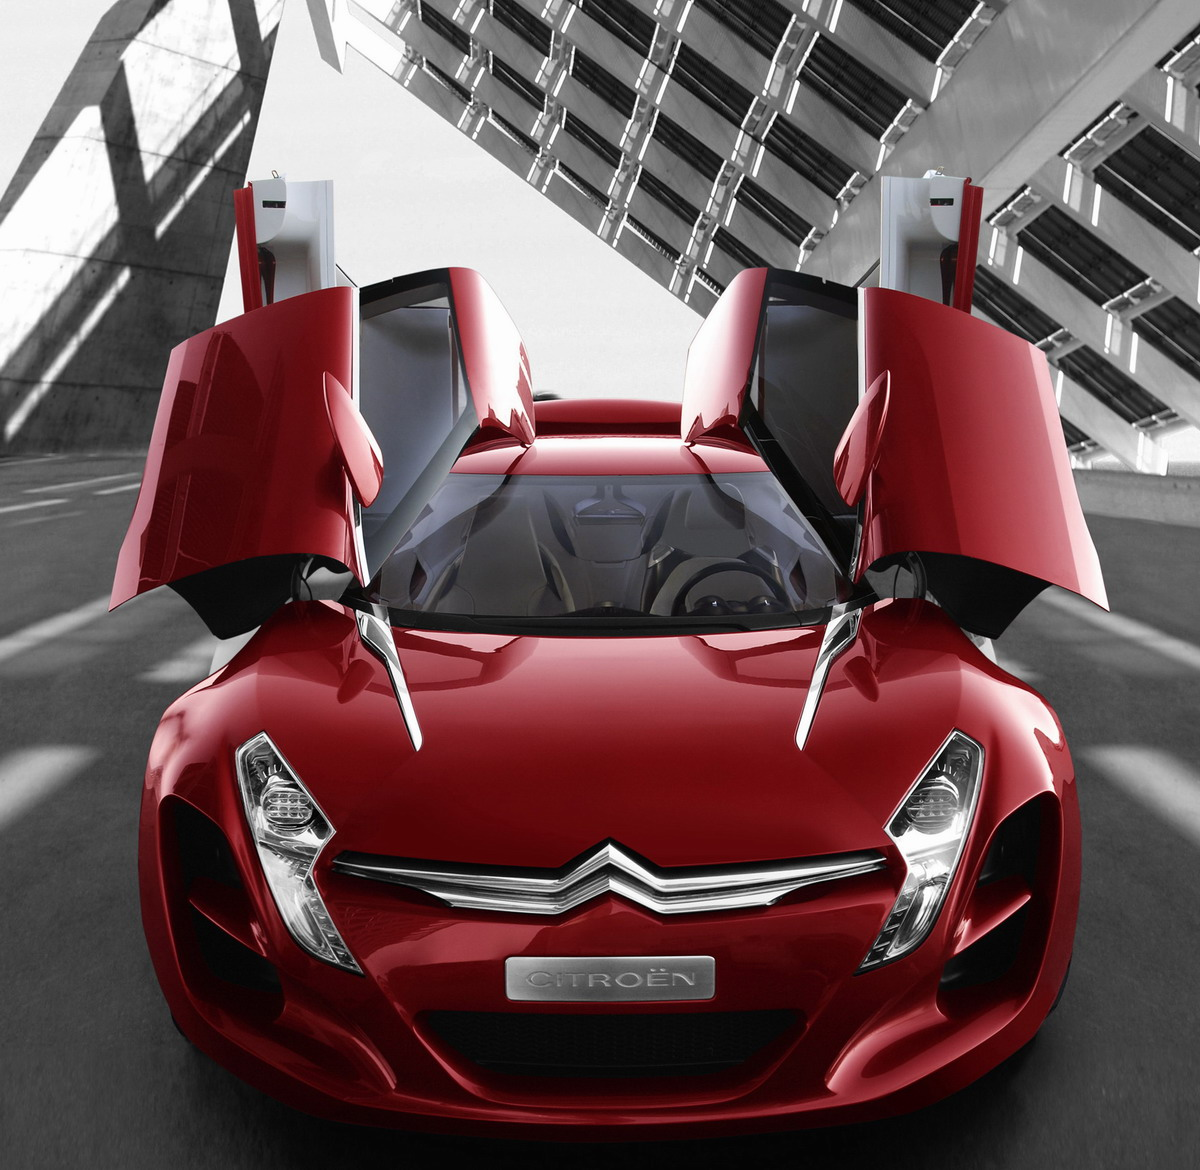 Imagenes De Citroen Wallpaper Gallery Free